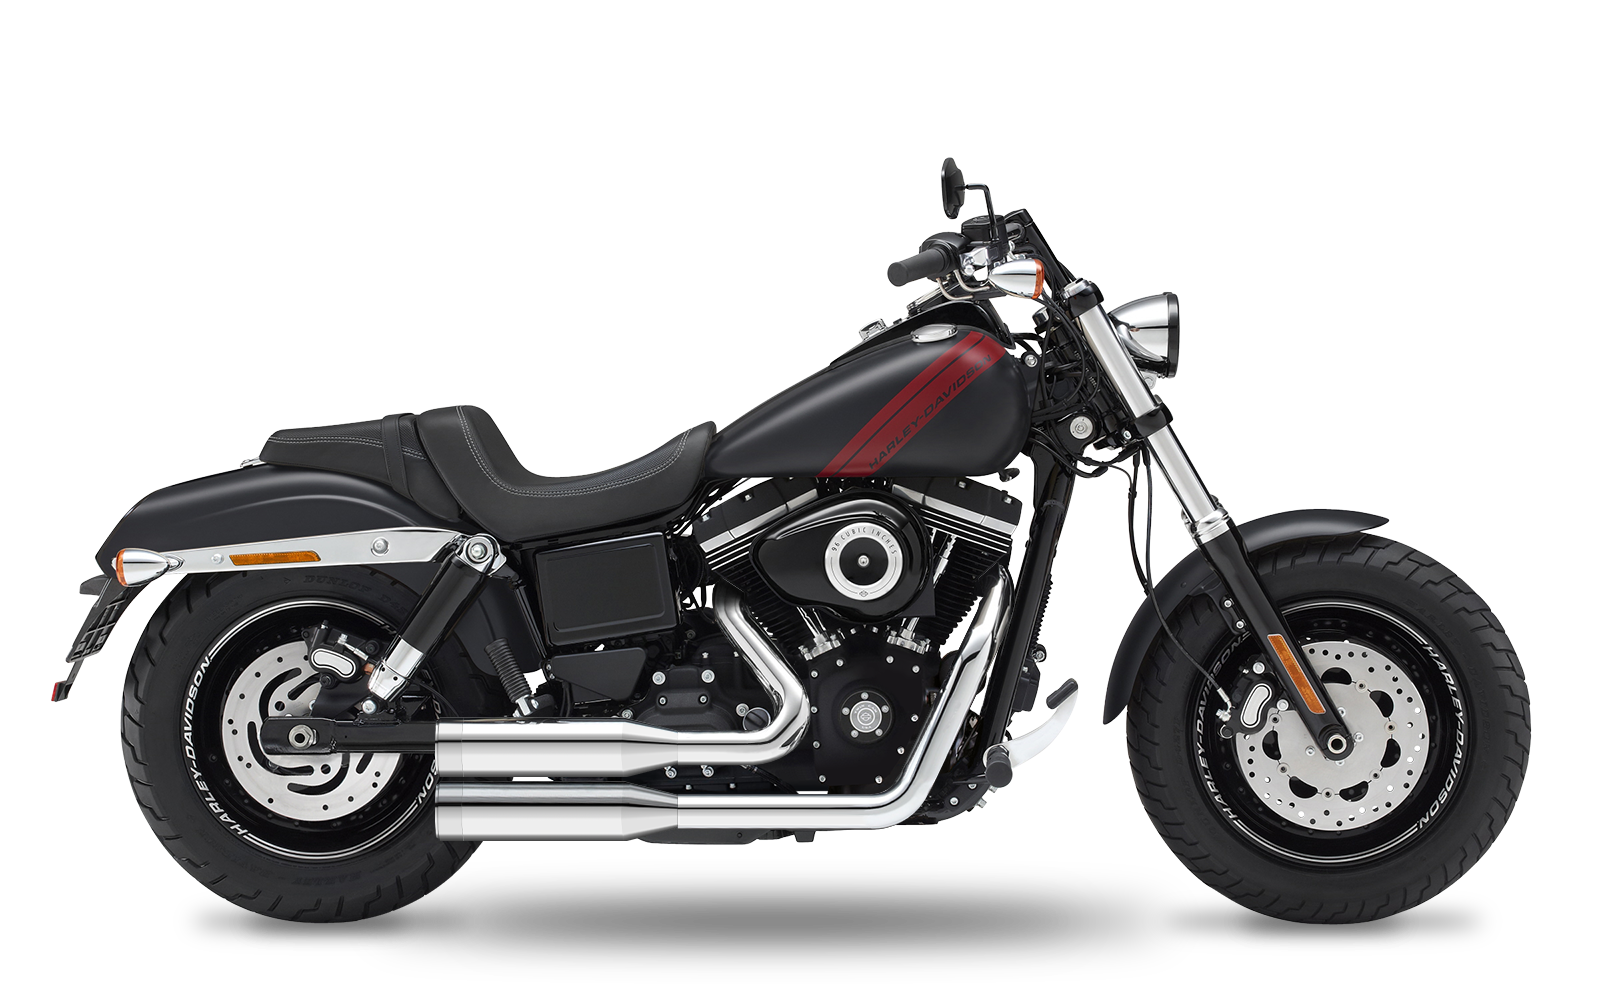 Dyna - Fat Bob - TC96 - 2010-2012 - Complete systems